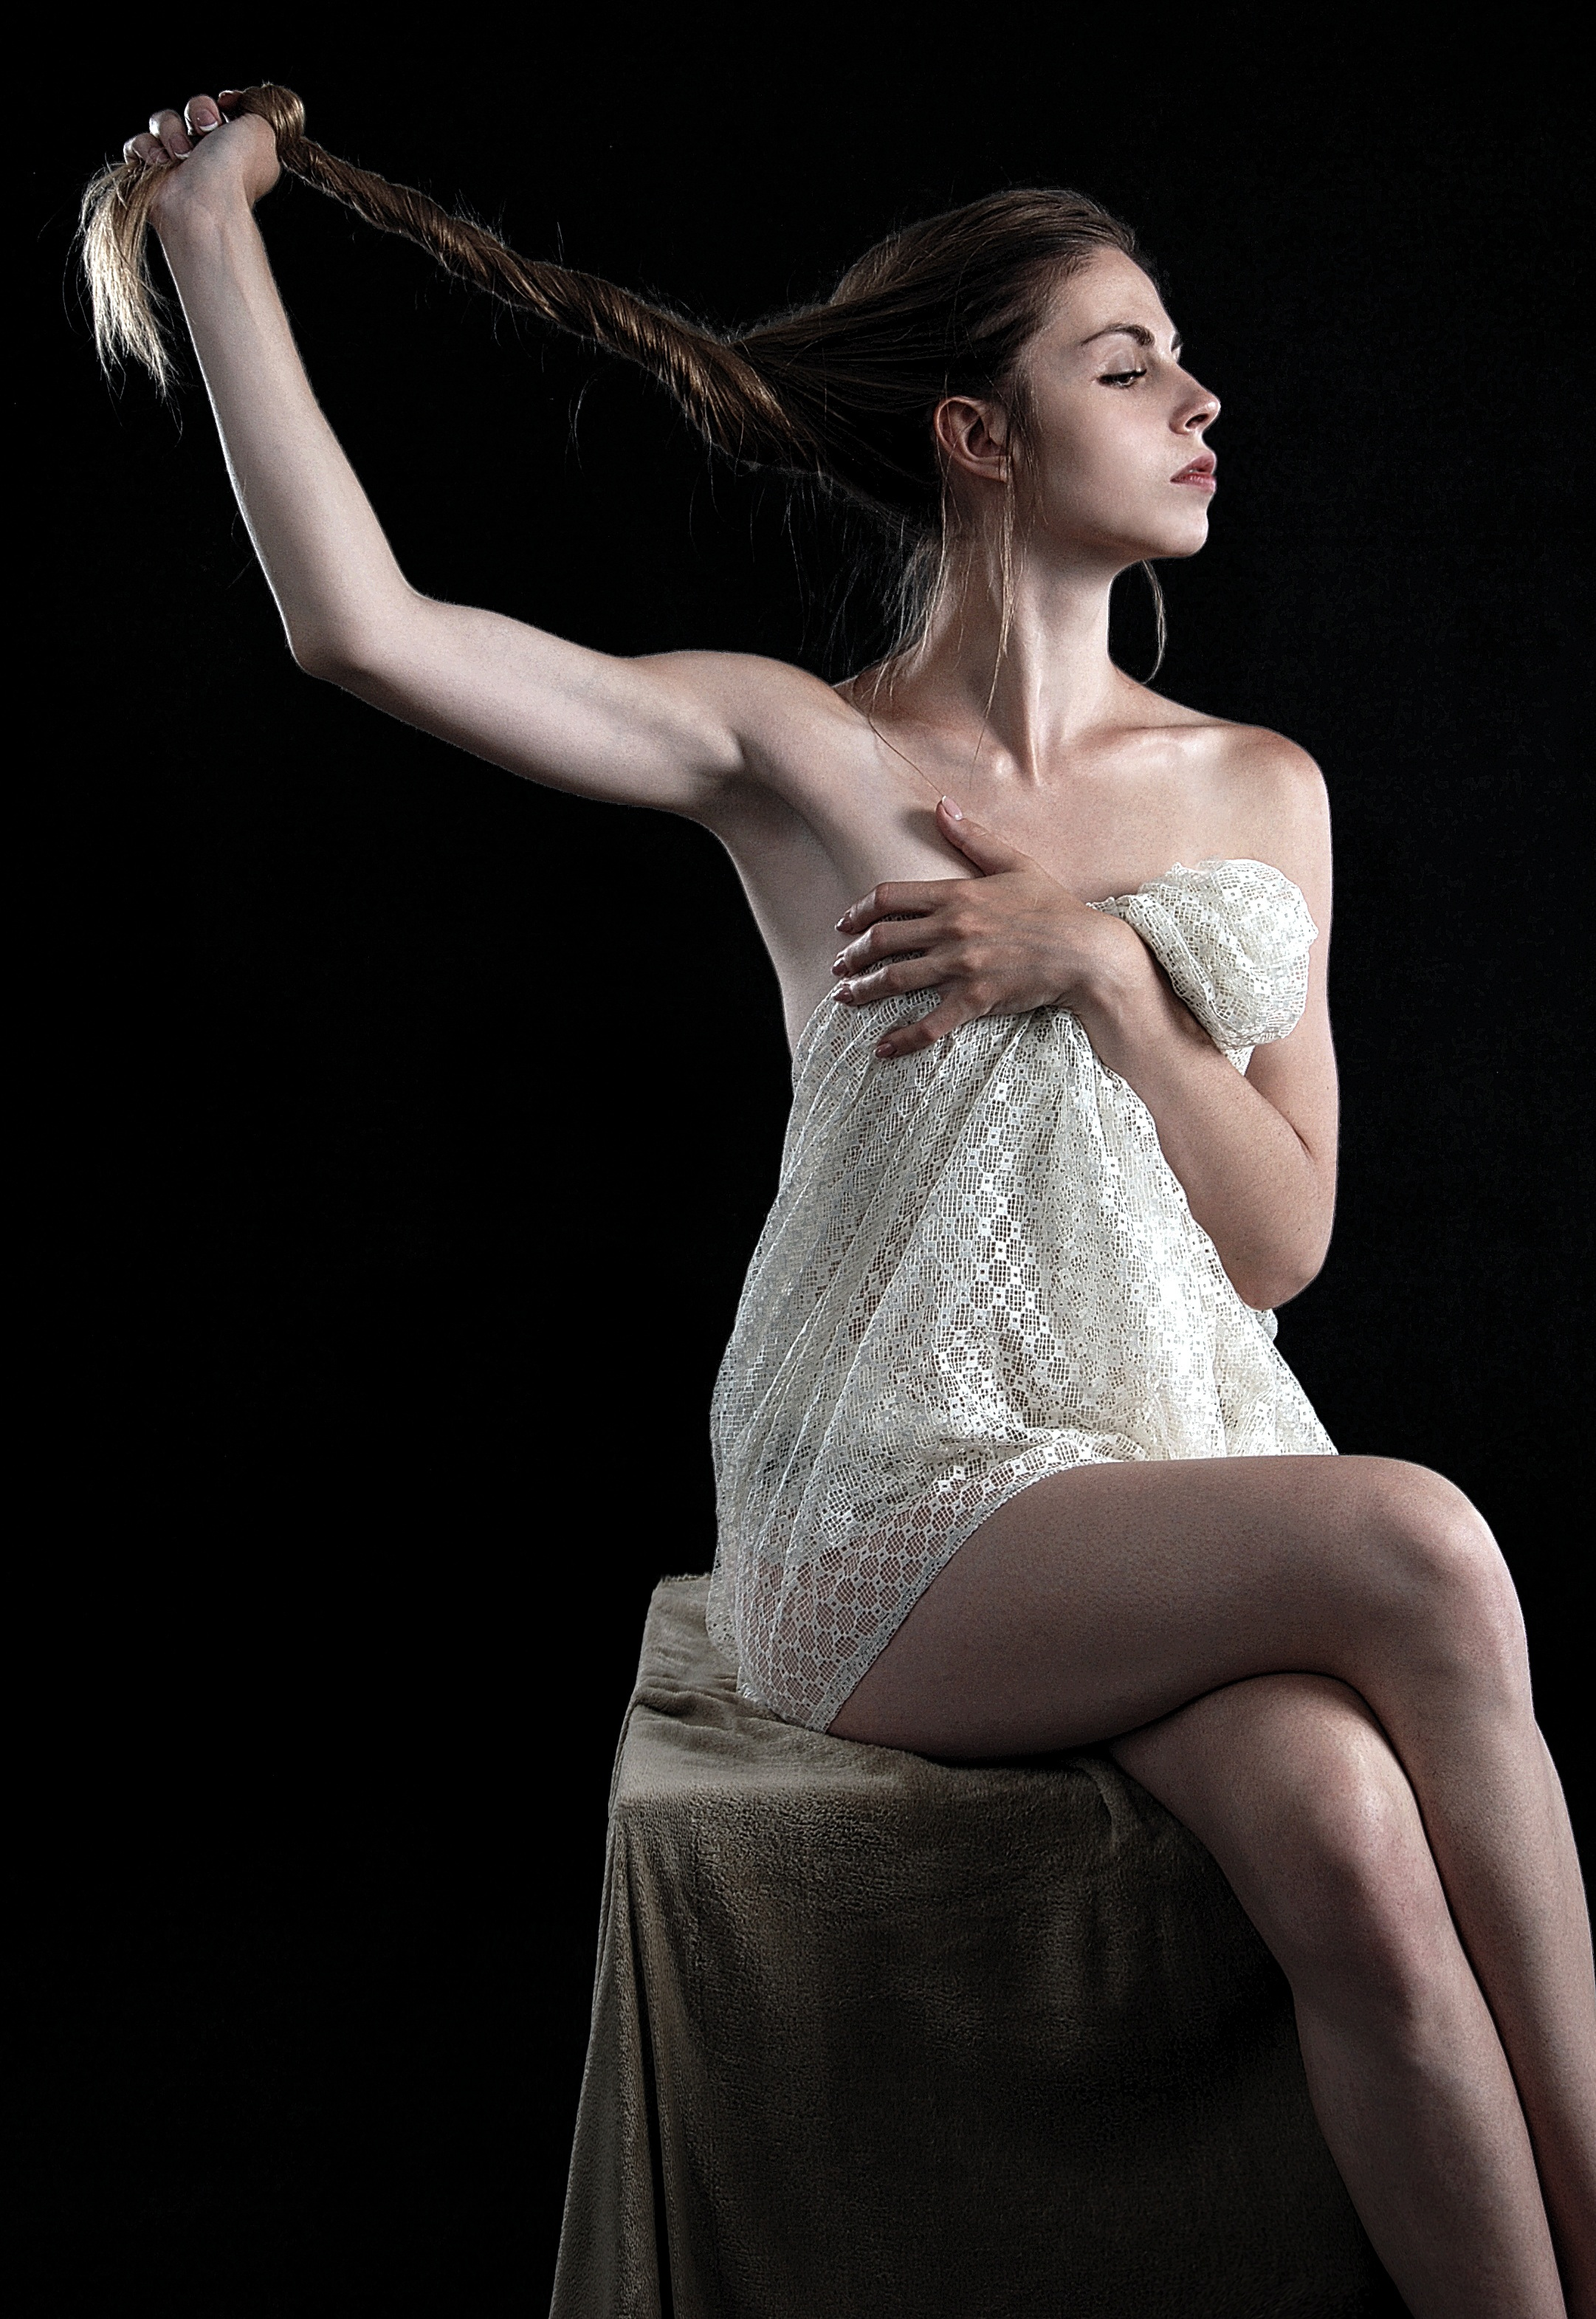 Woman Sitting on Stool While Holding Her Hair